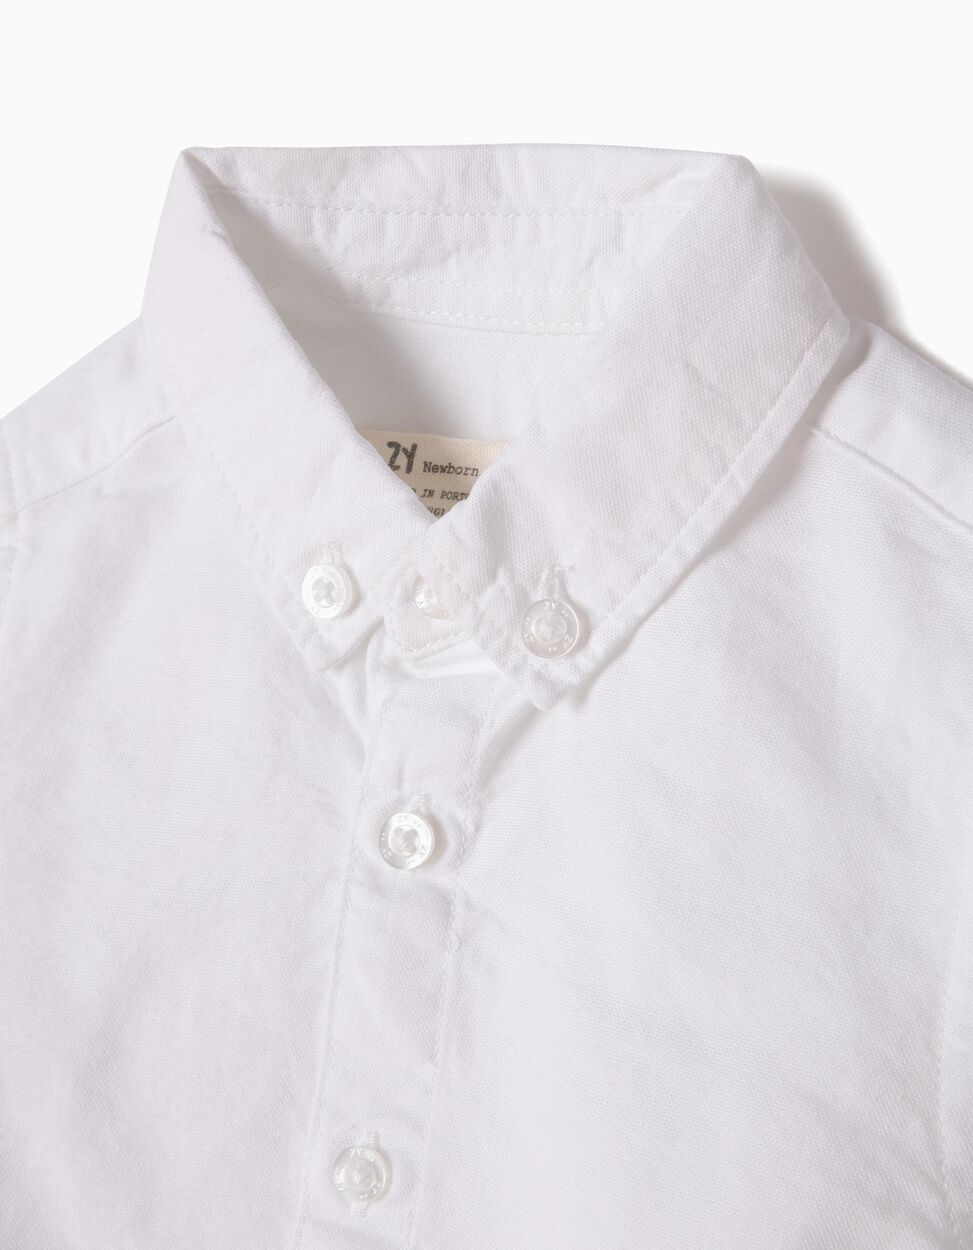 Body-Camisa Oxford Branco